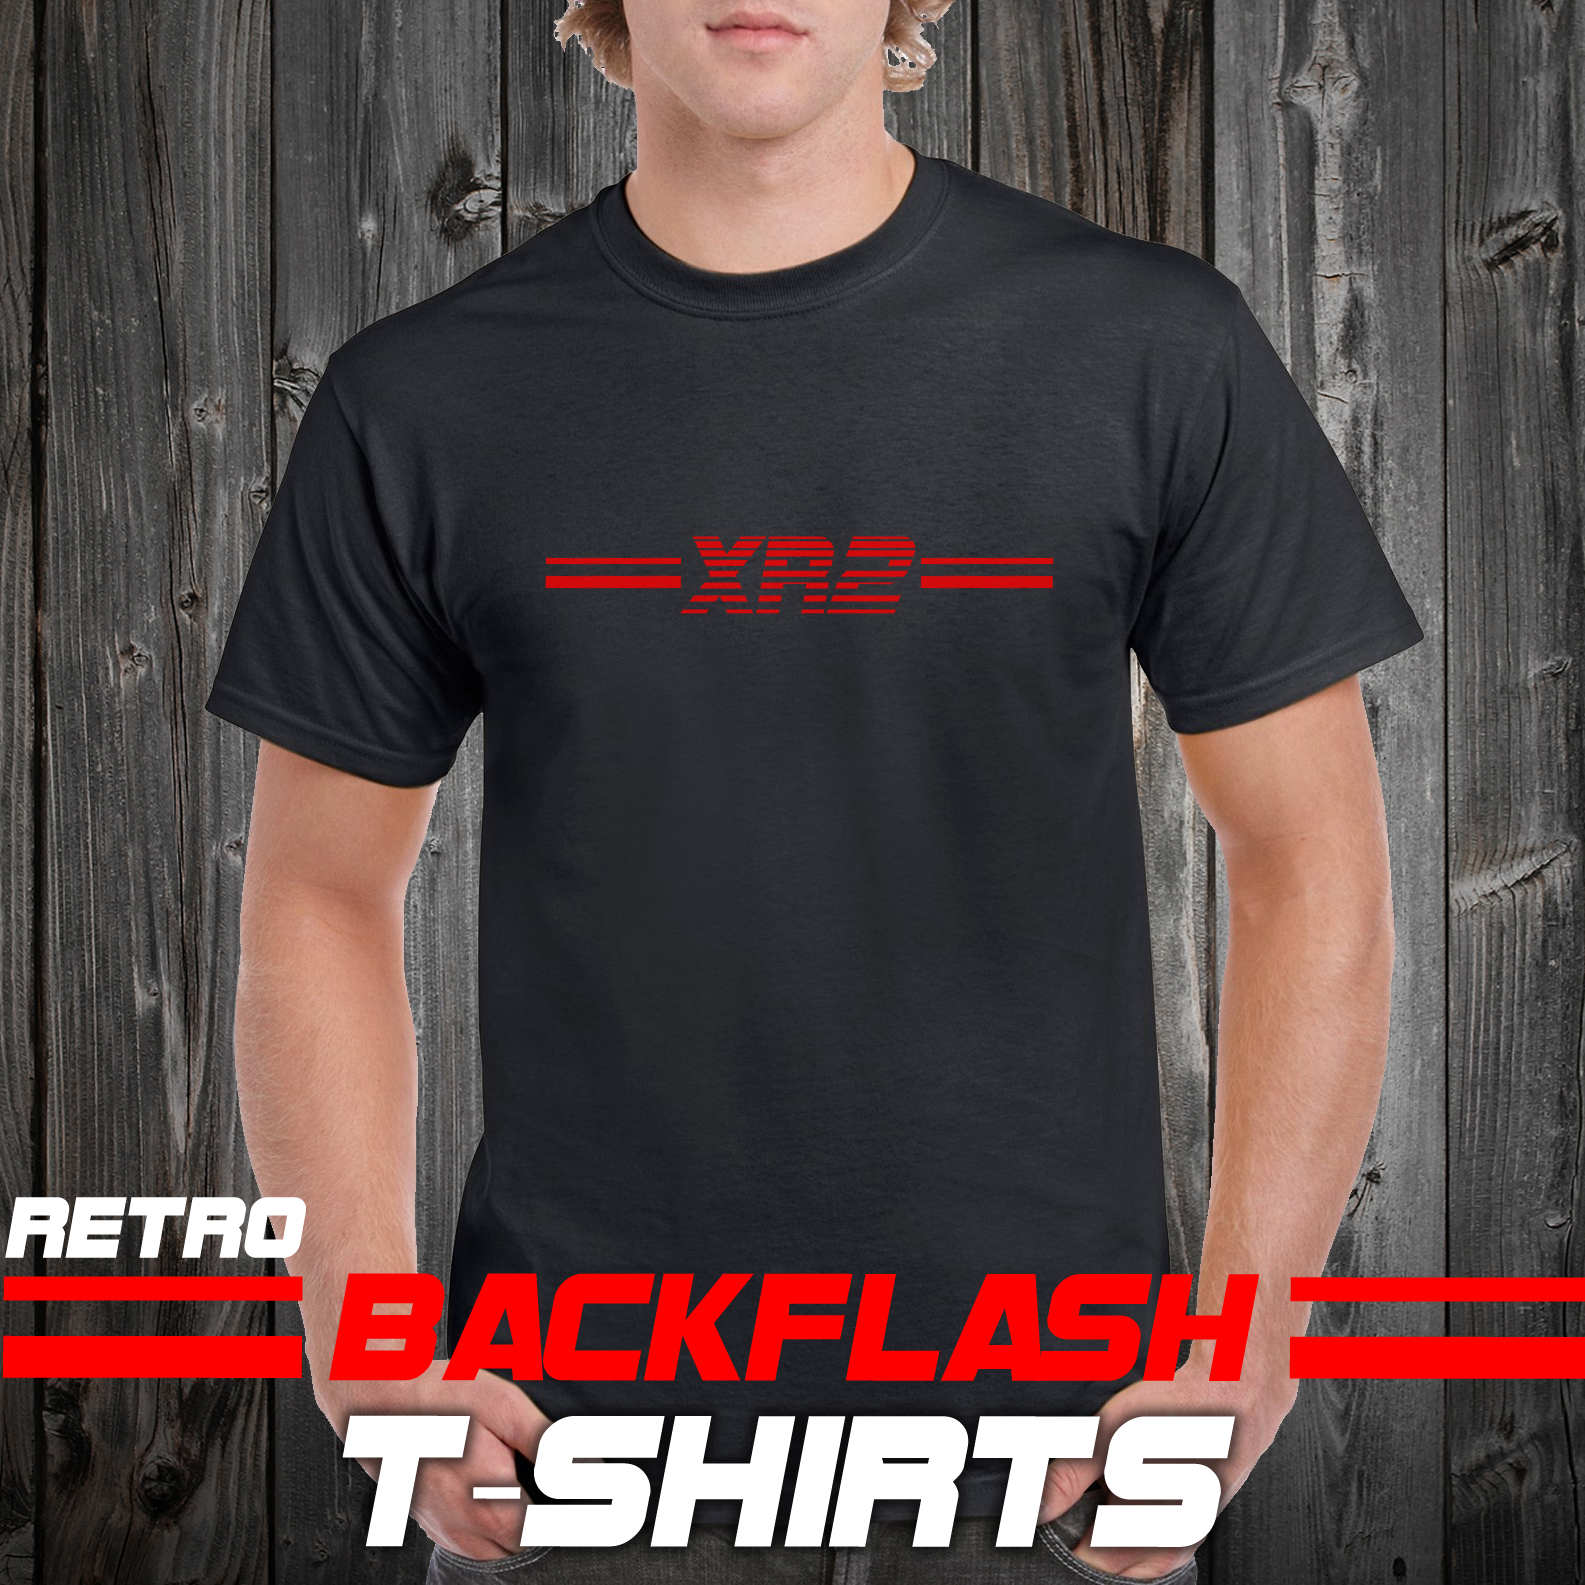 Backflash Car retro T shirts